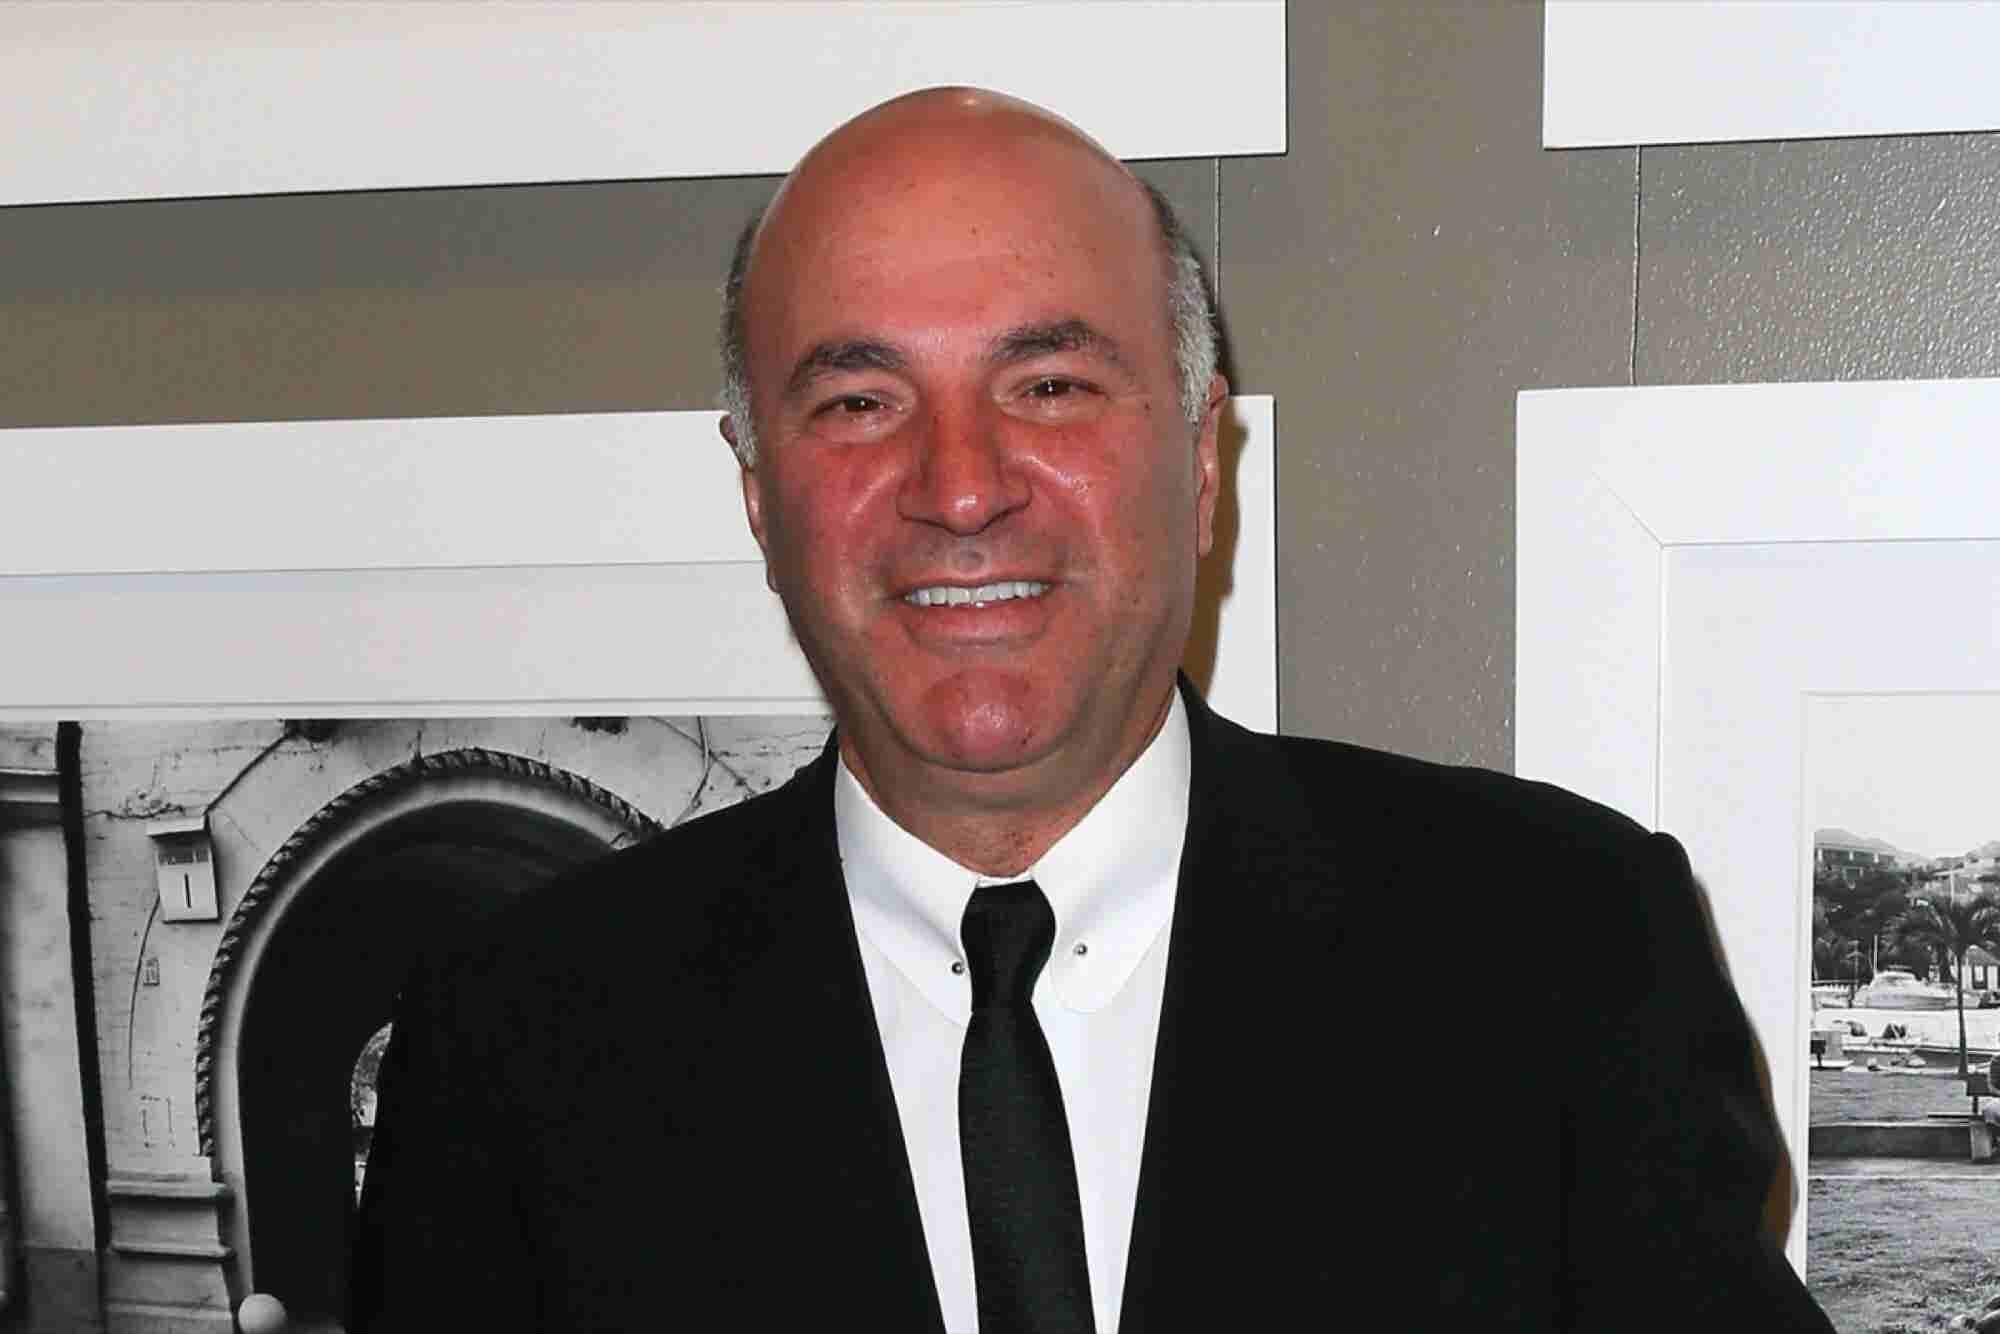 Shark Tank's Kevin O'Leary: Having Dyslexia Is a 'Superpower' in Busin...